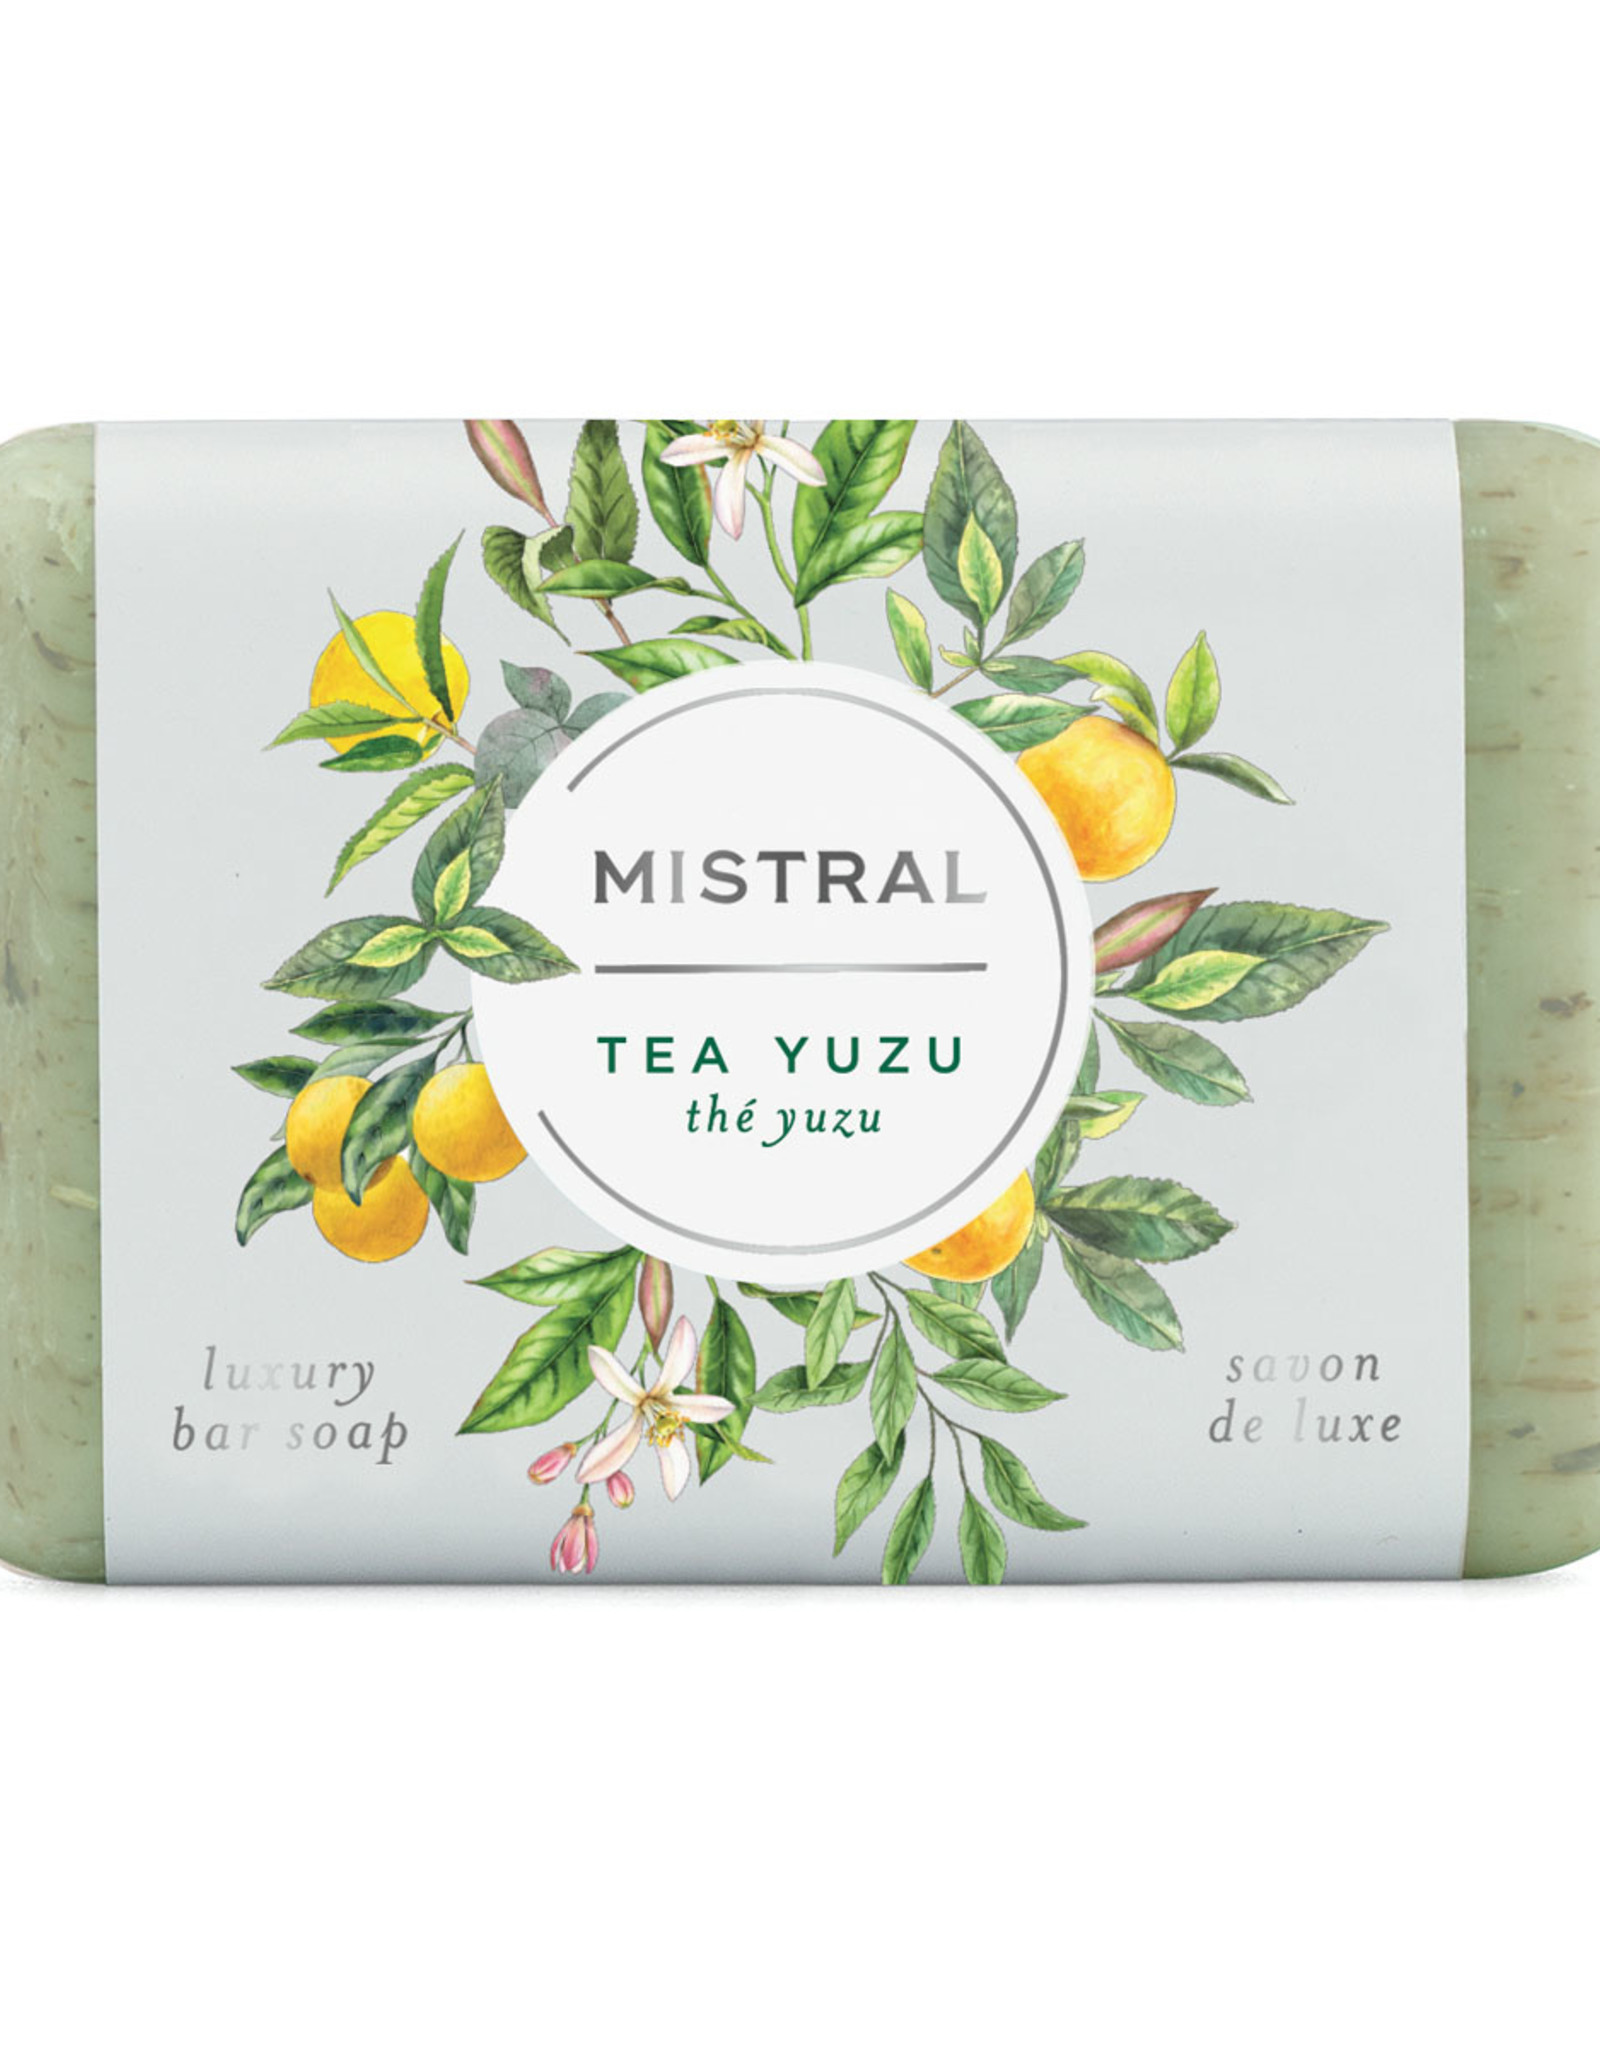 Tea Yuzu 7 oz. - Mistral Classic French Soap Collection